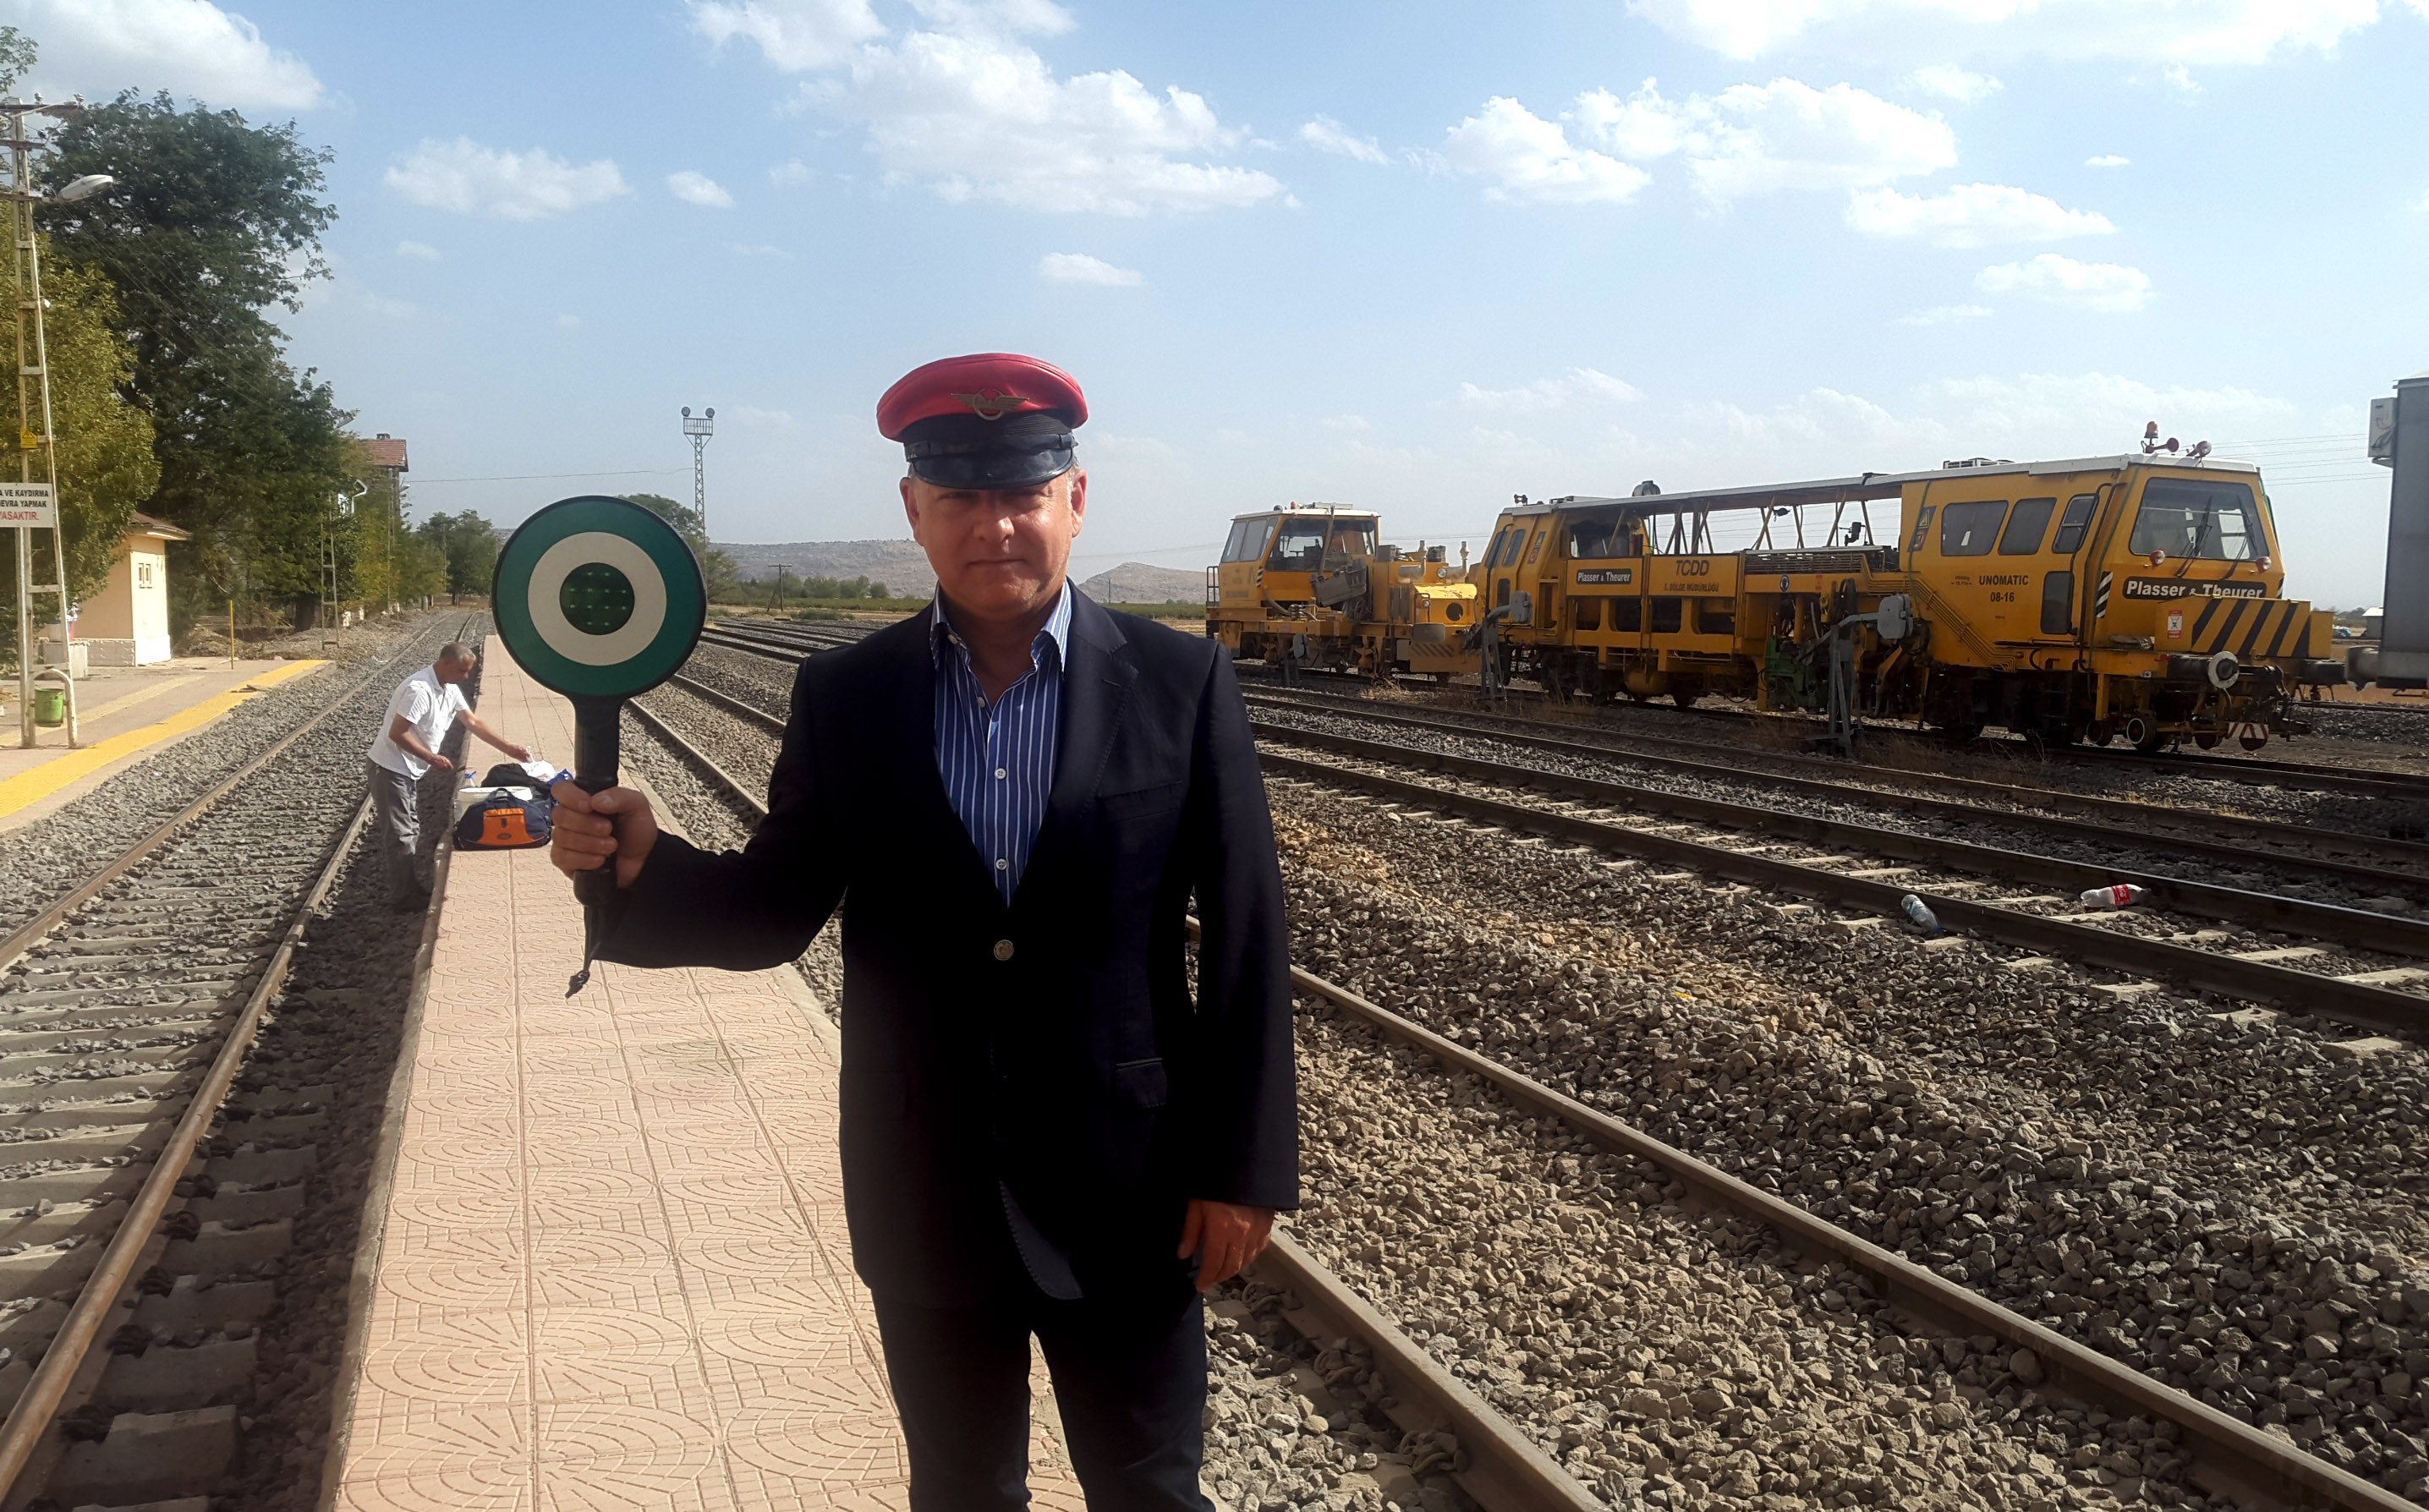 Pretend train conductor! at Ergani, Diyarbakır Province